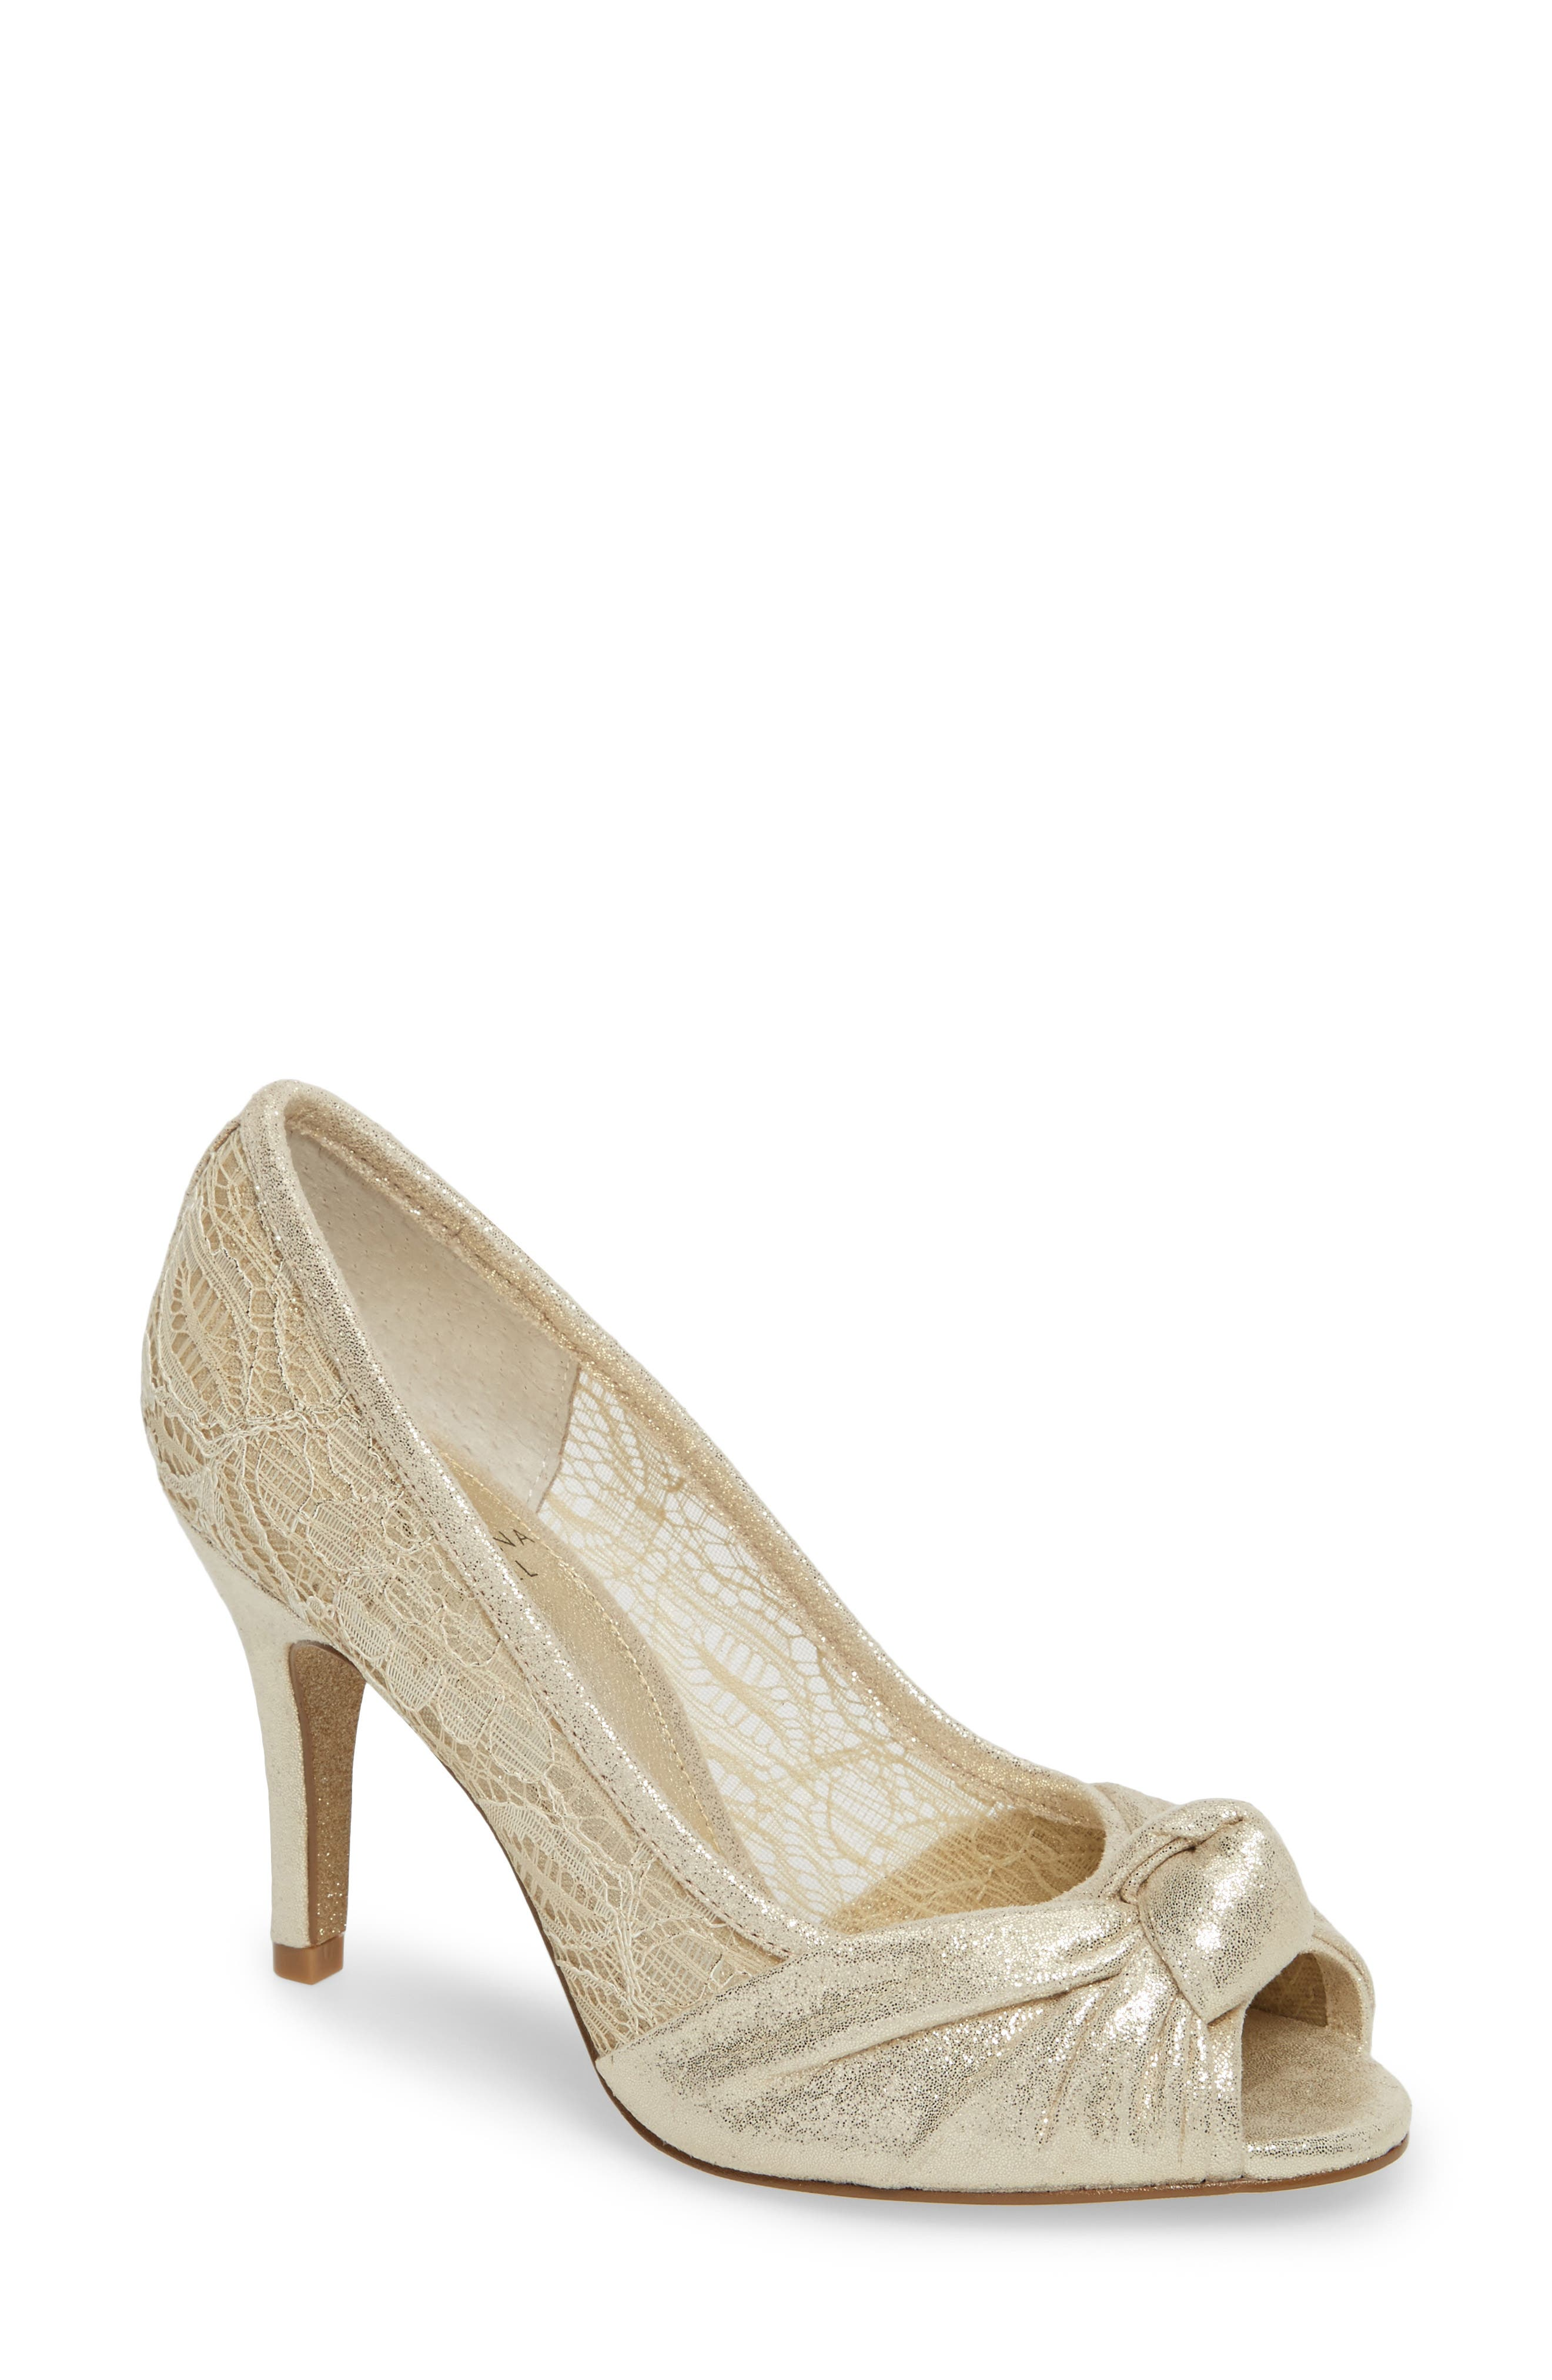 Adrianna Papell Francesca Knotted Peep Toe Pump (Women)